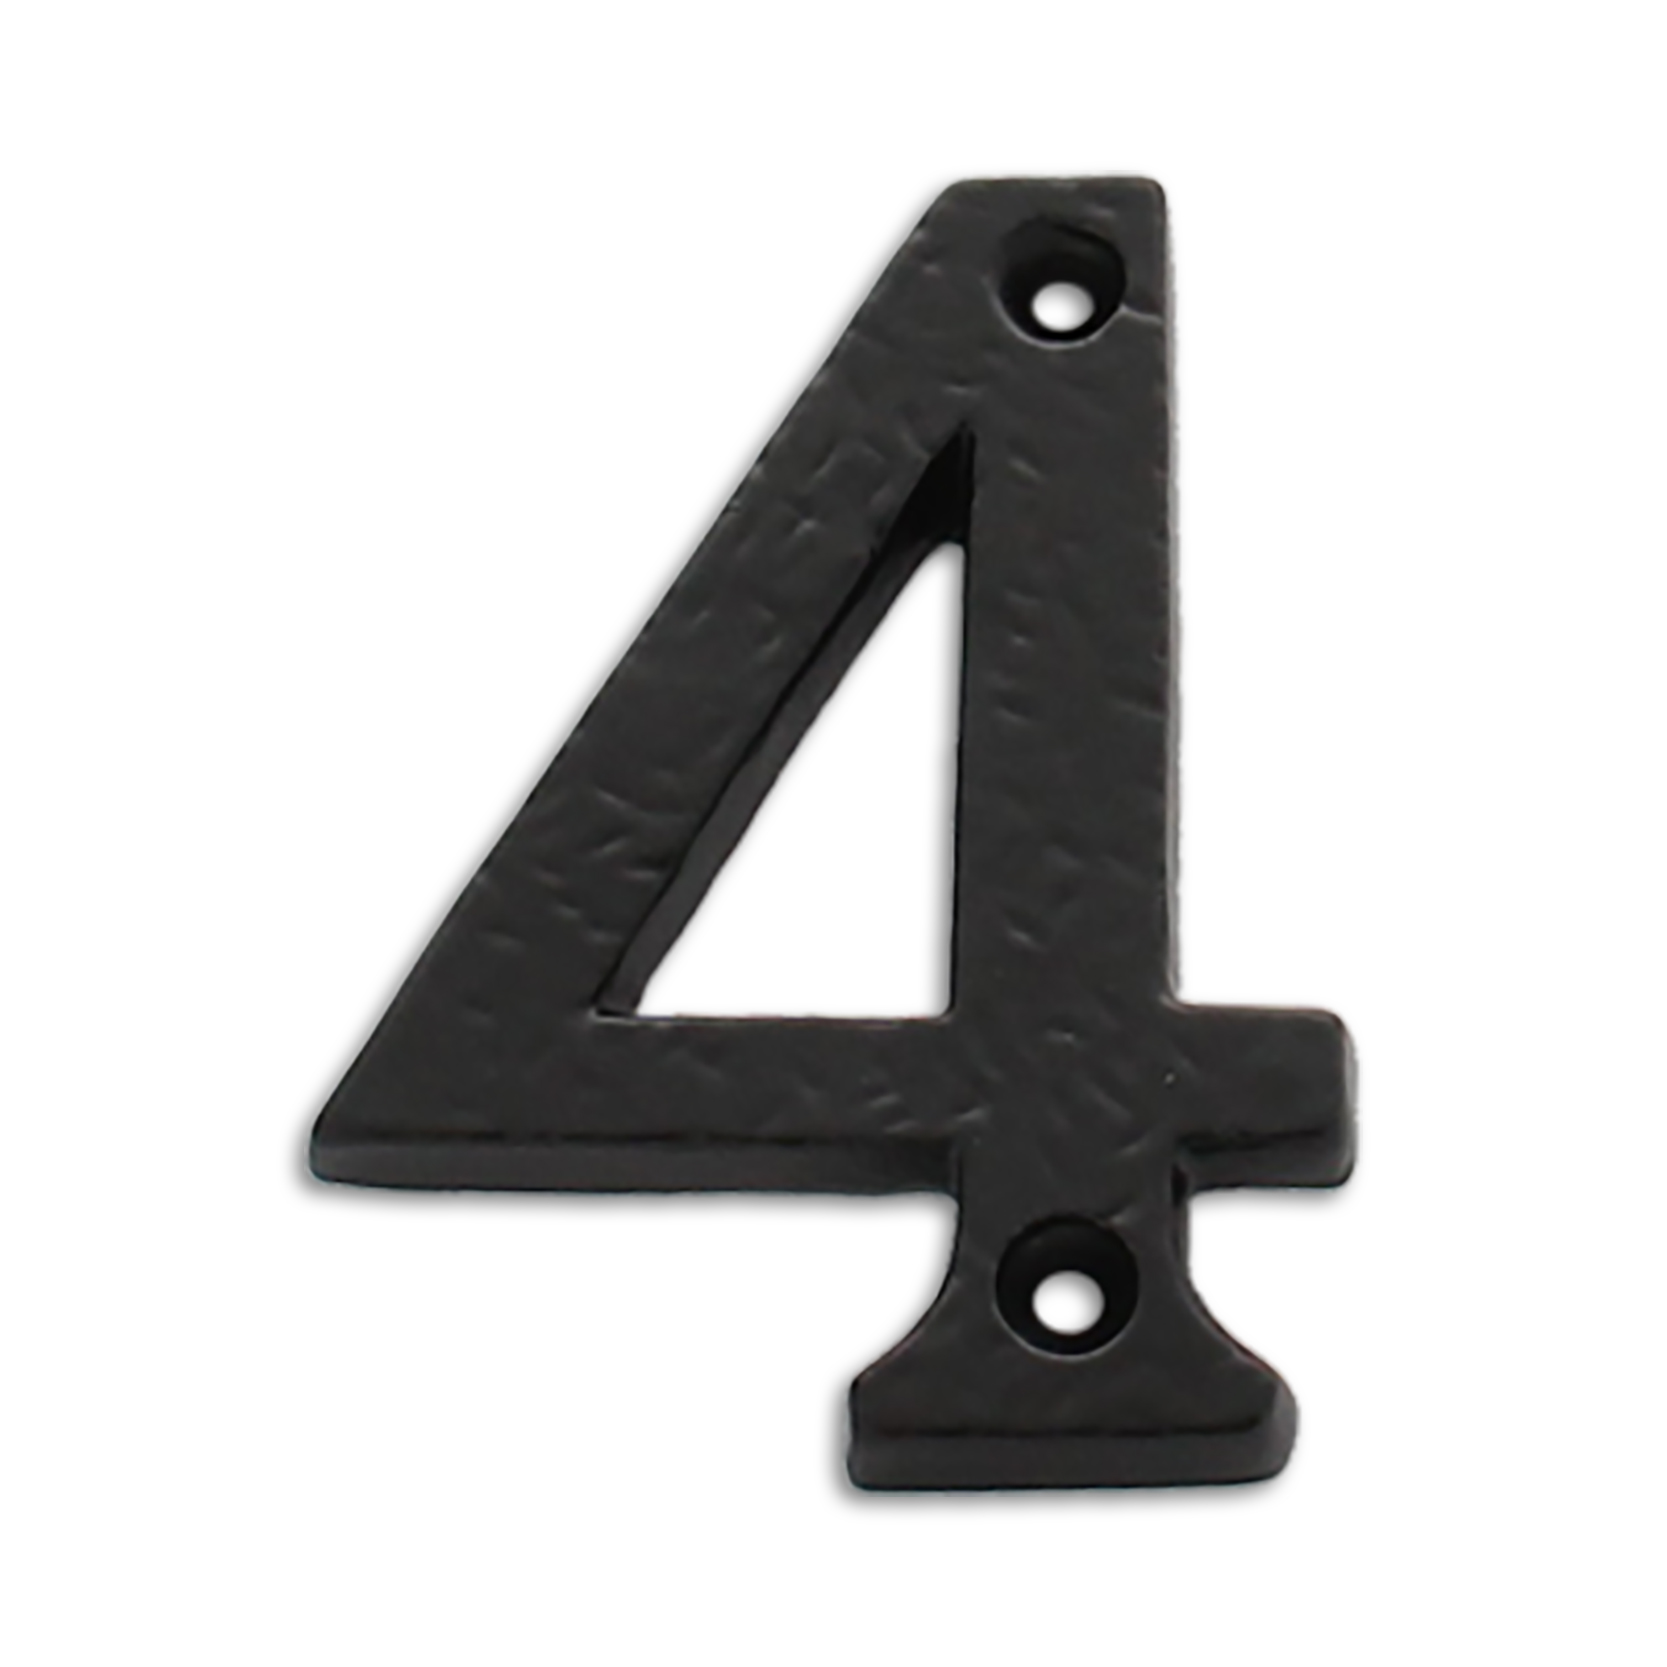 3-inch iron metal house number in iron black finish - metal number 4